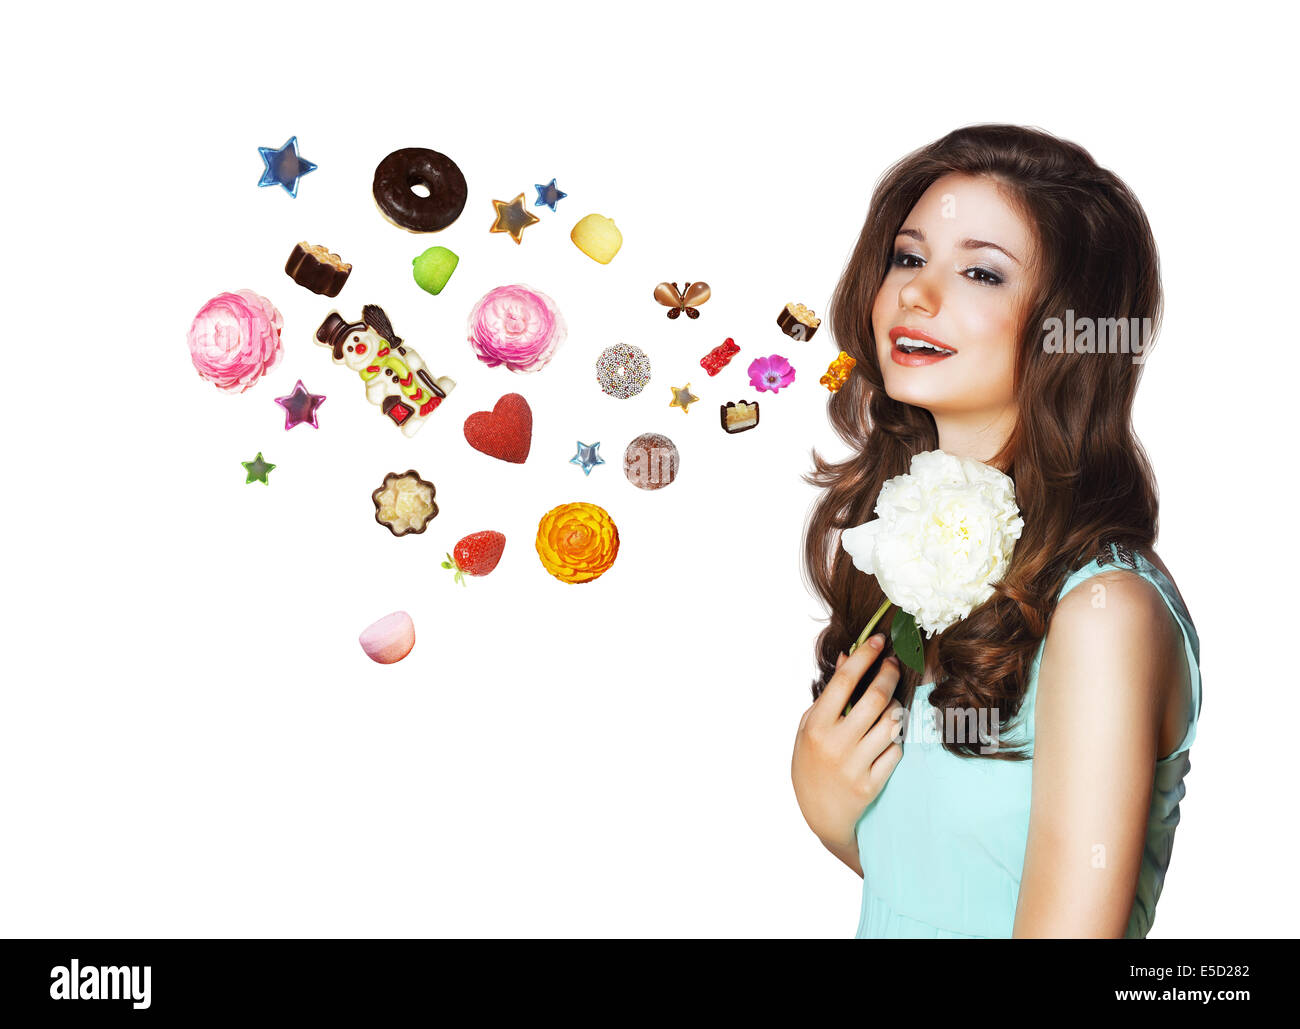 Imagination. Funny Woman Dreams about Different Things - Stock Image